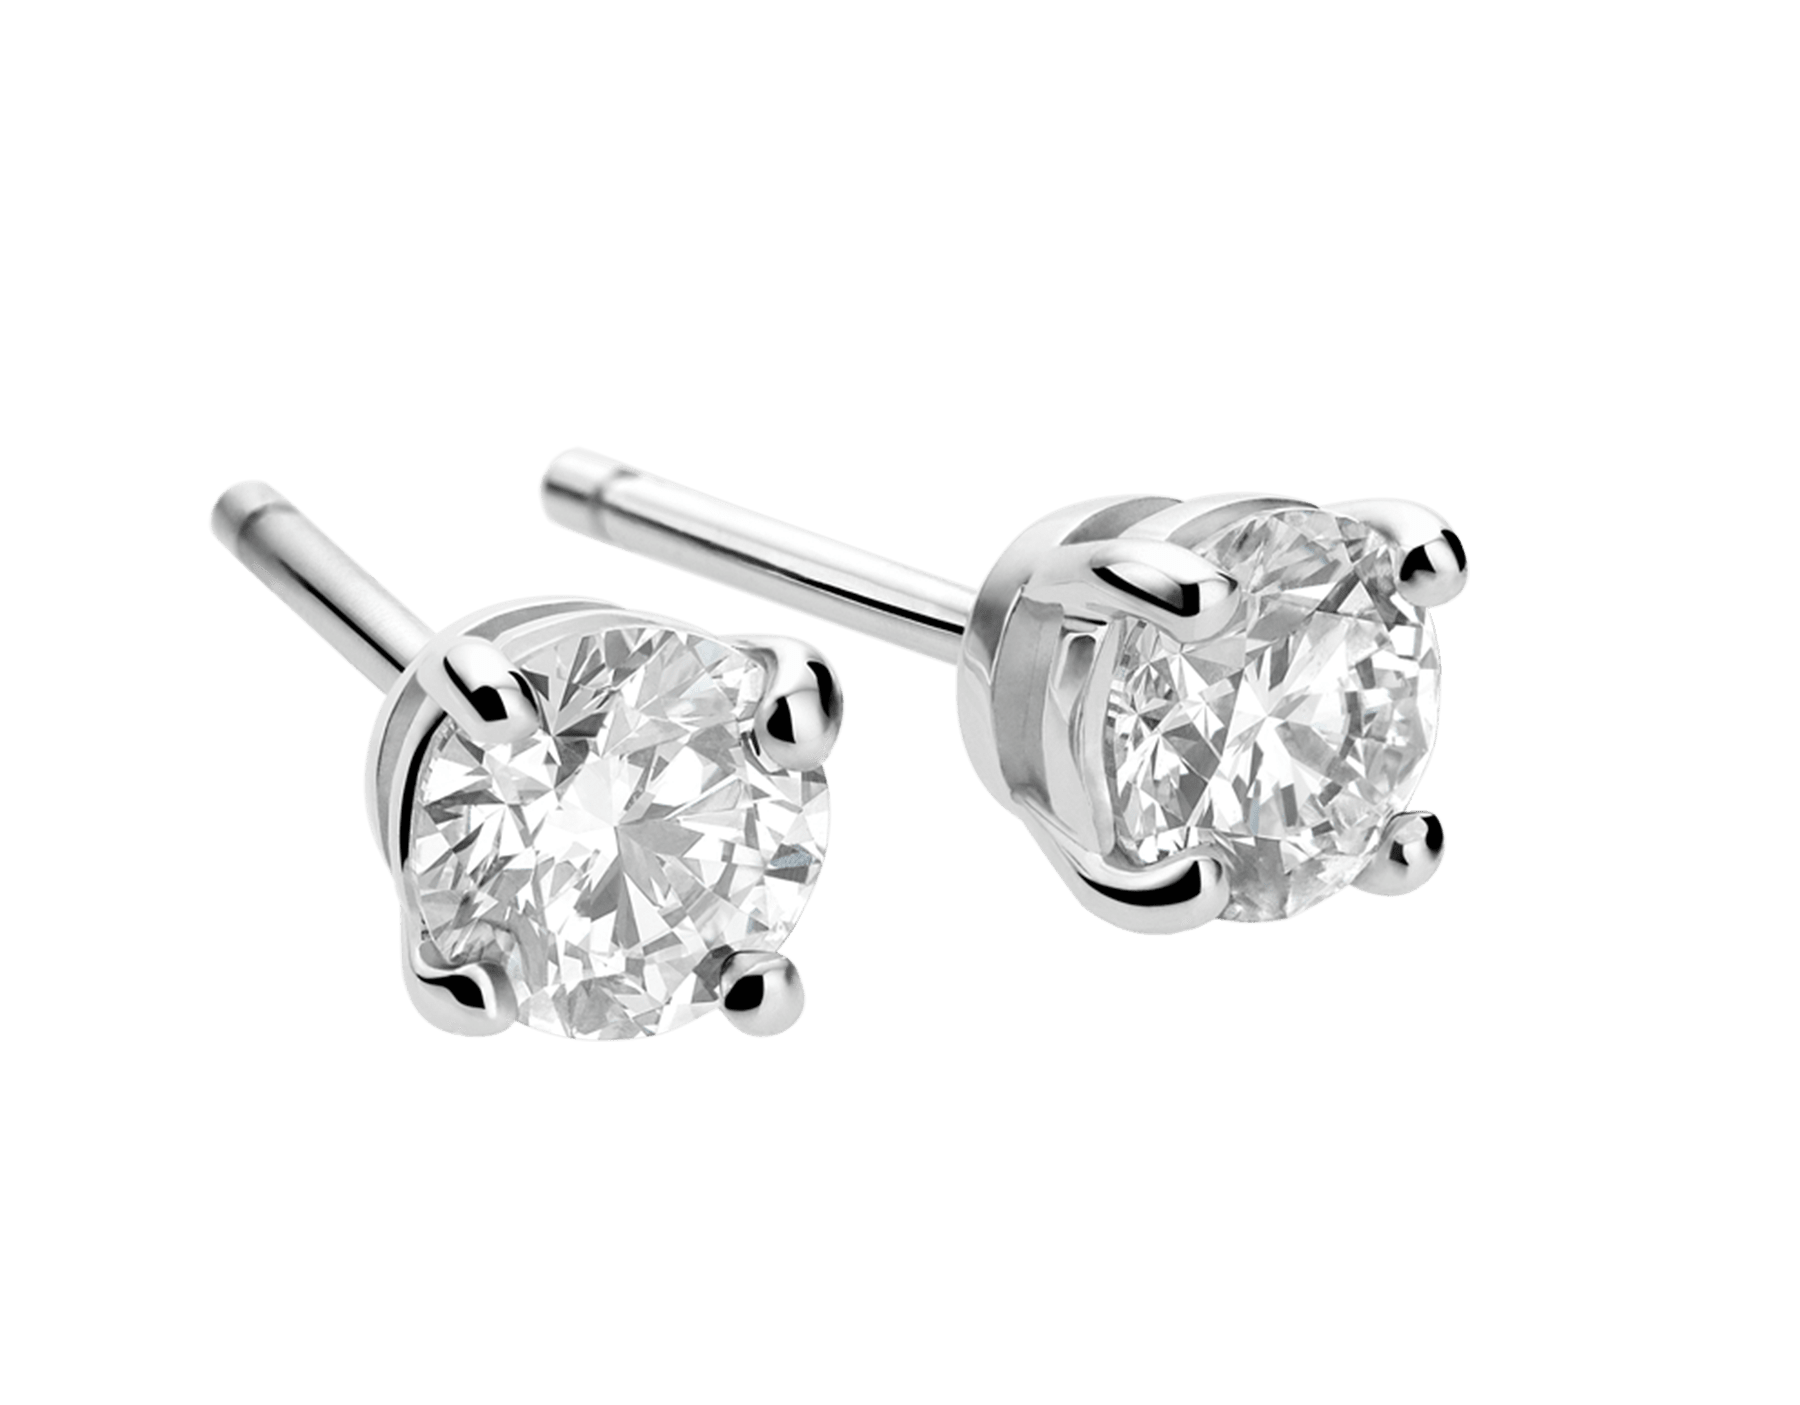 Griffe earrings in 18 kt white gold with 2 round brilliant cut diamonds. Available from 0.40 ct each. A classic setting that allows the beauty and the pureness of the solitaire diamond to assert itself OR-GRIFFE image 1